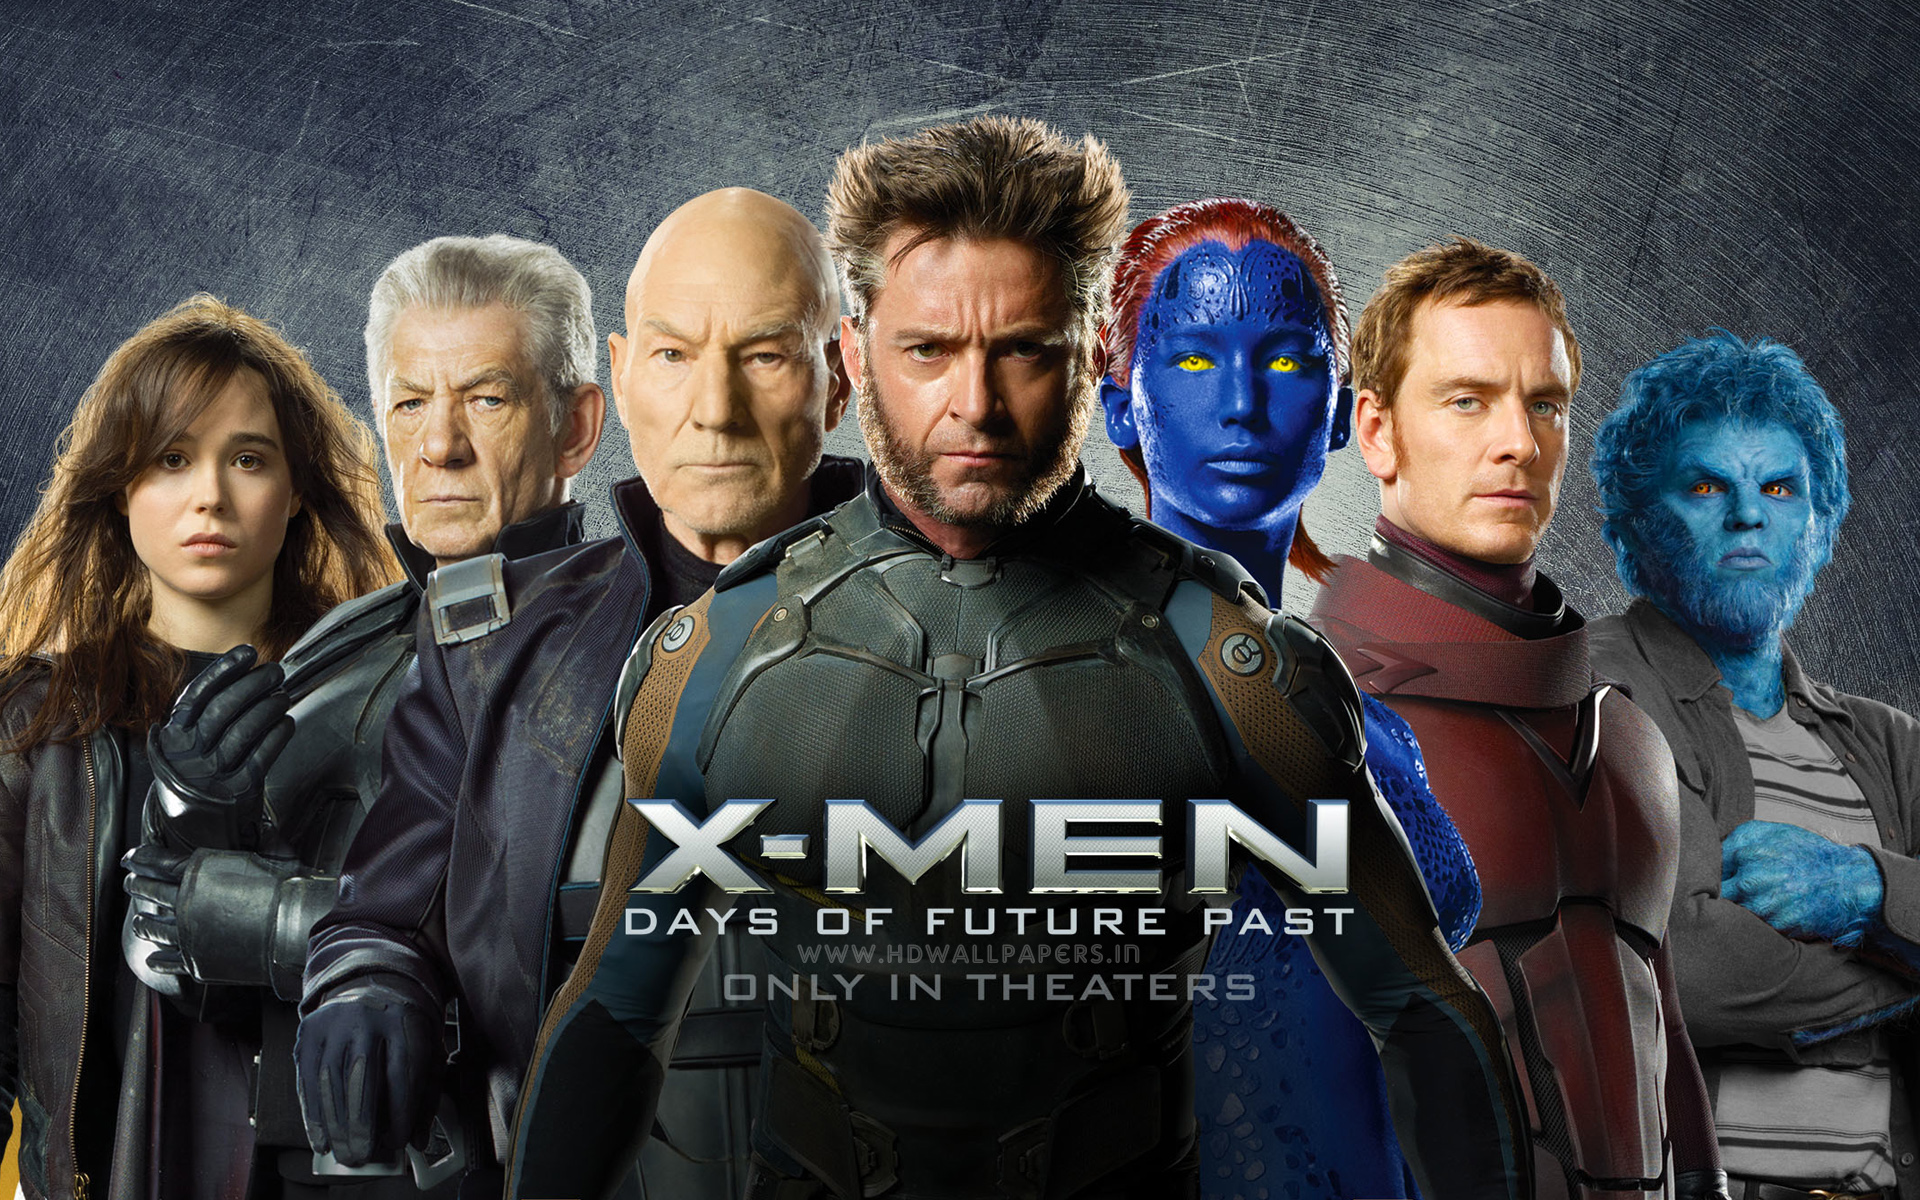 X Men Days of Future Past 2014 wallpaper